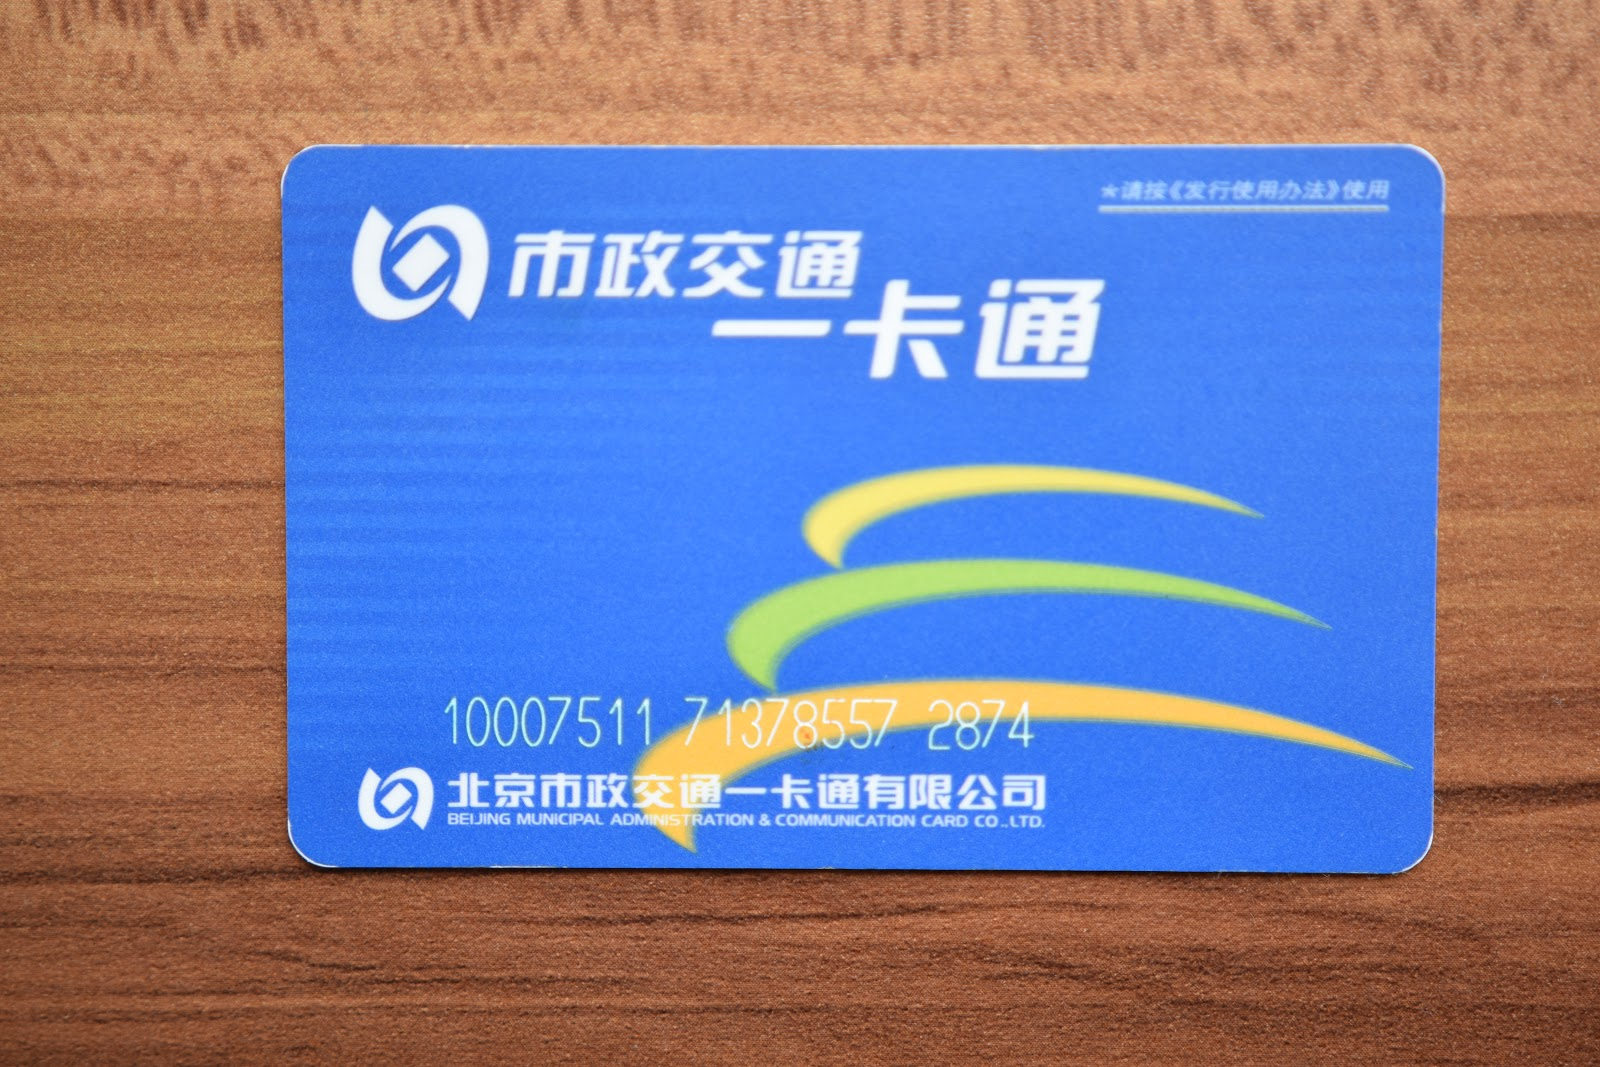 Beijing transportation card - all you need to know before going to Beijing, China